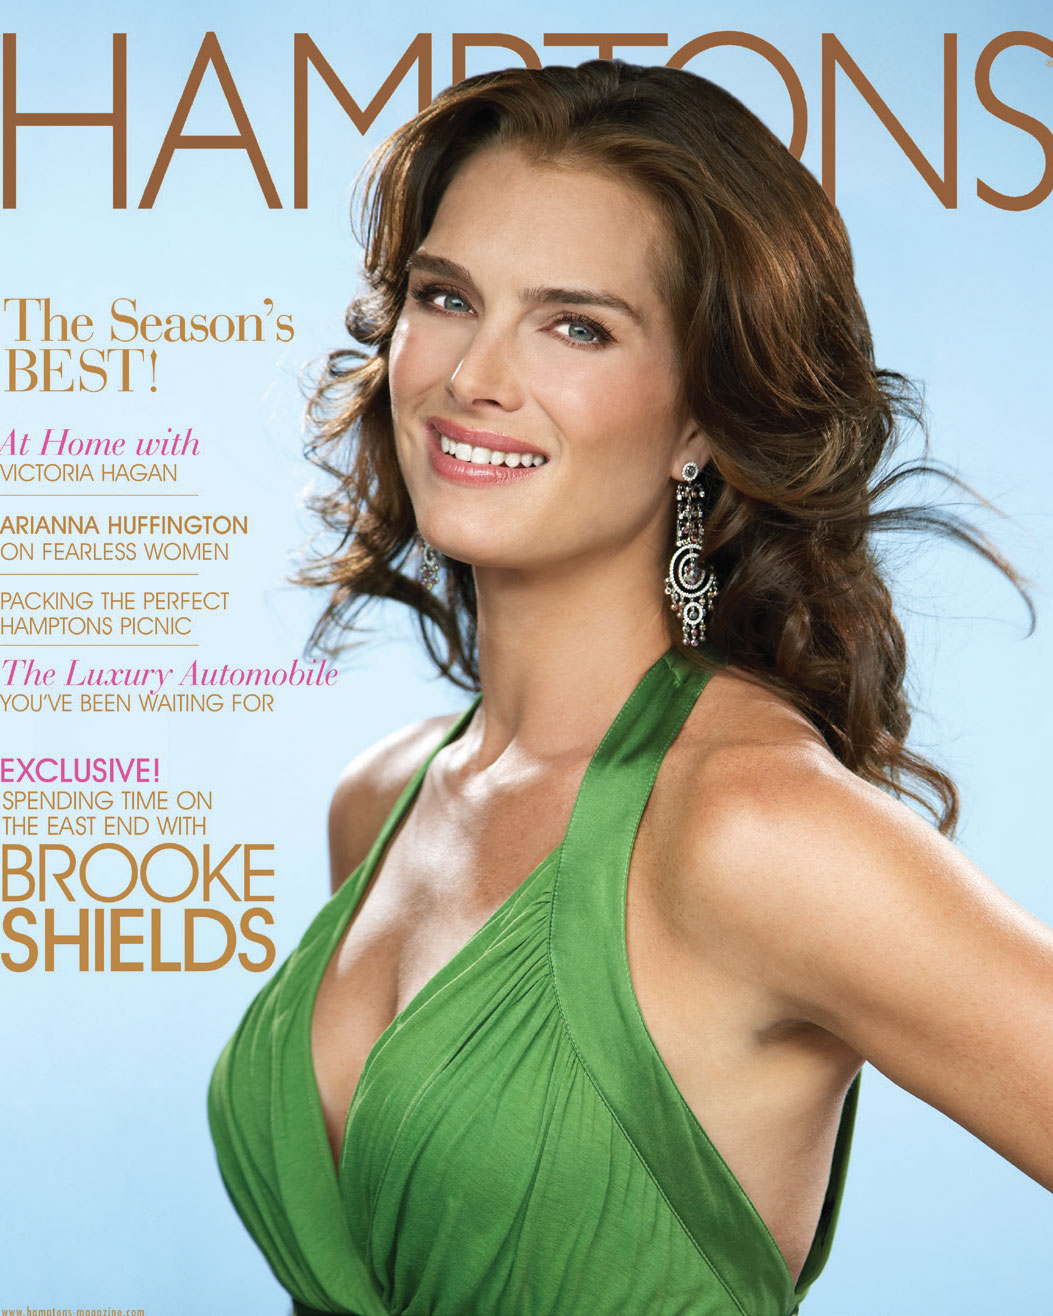 brooke-shields-06.jpg